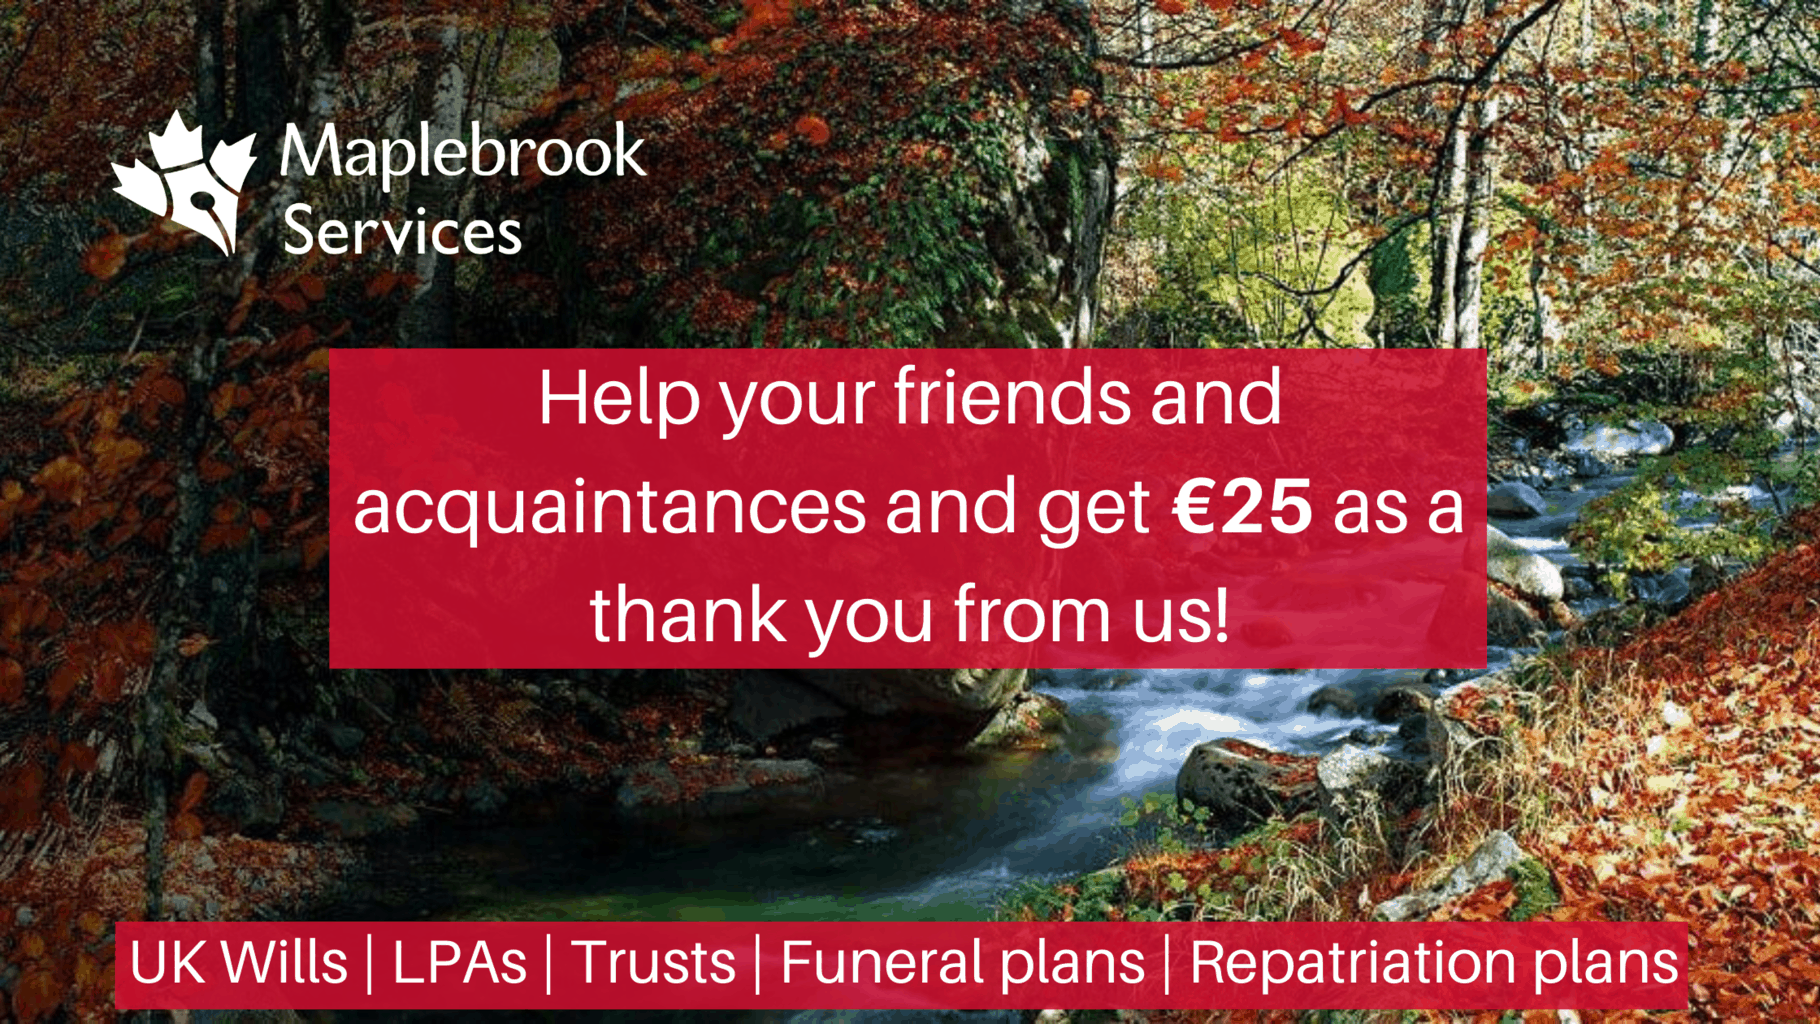 Refer A Friend And Get A €25 Thank You!